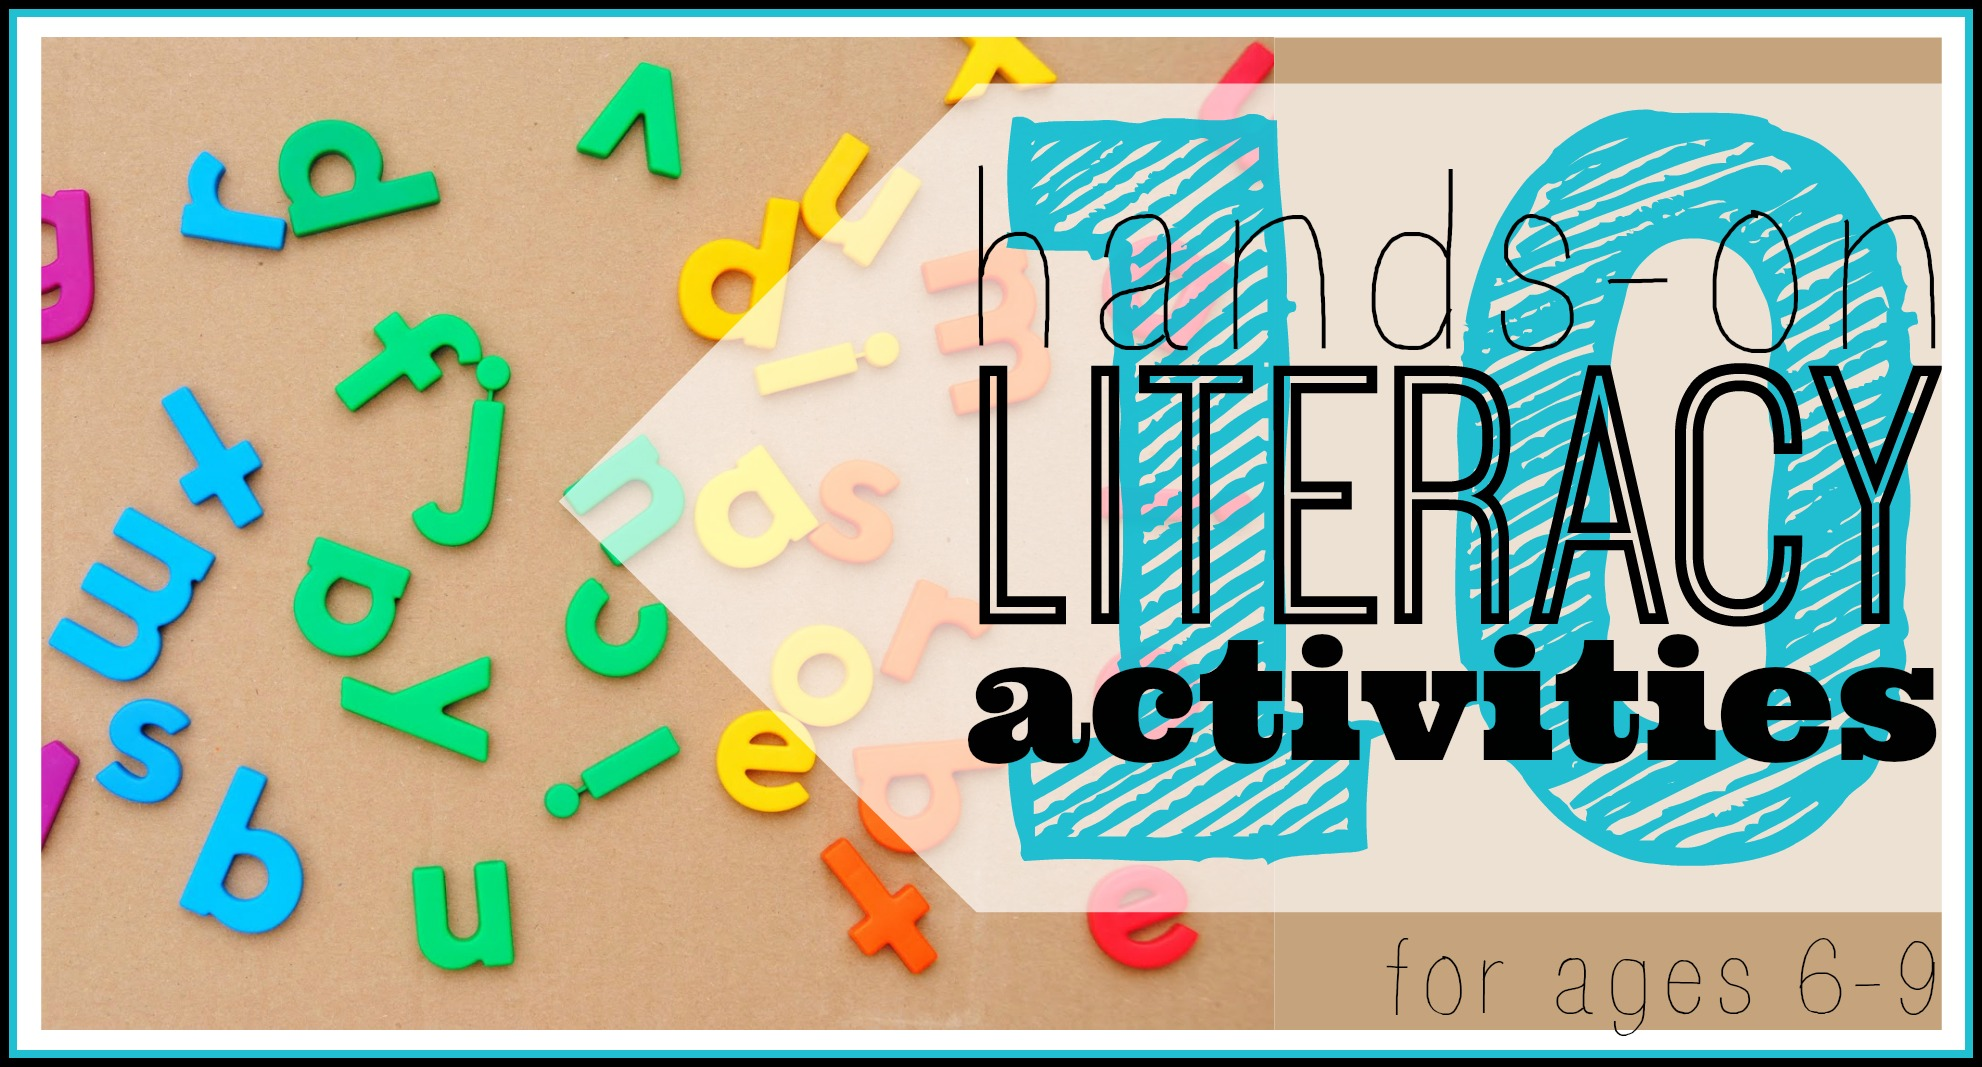 10 Hands-On Literacy Activities (ages 6-9)